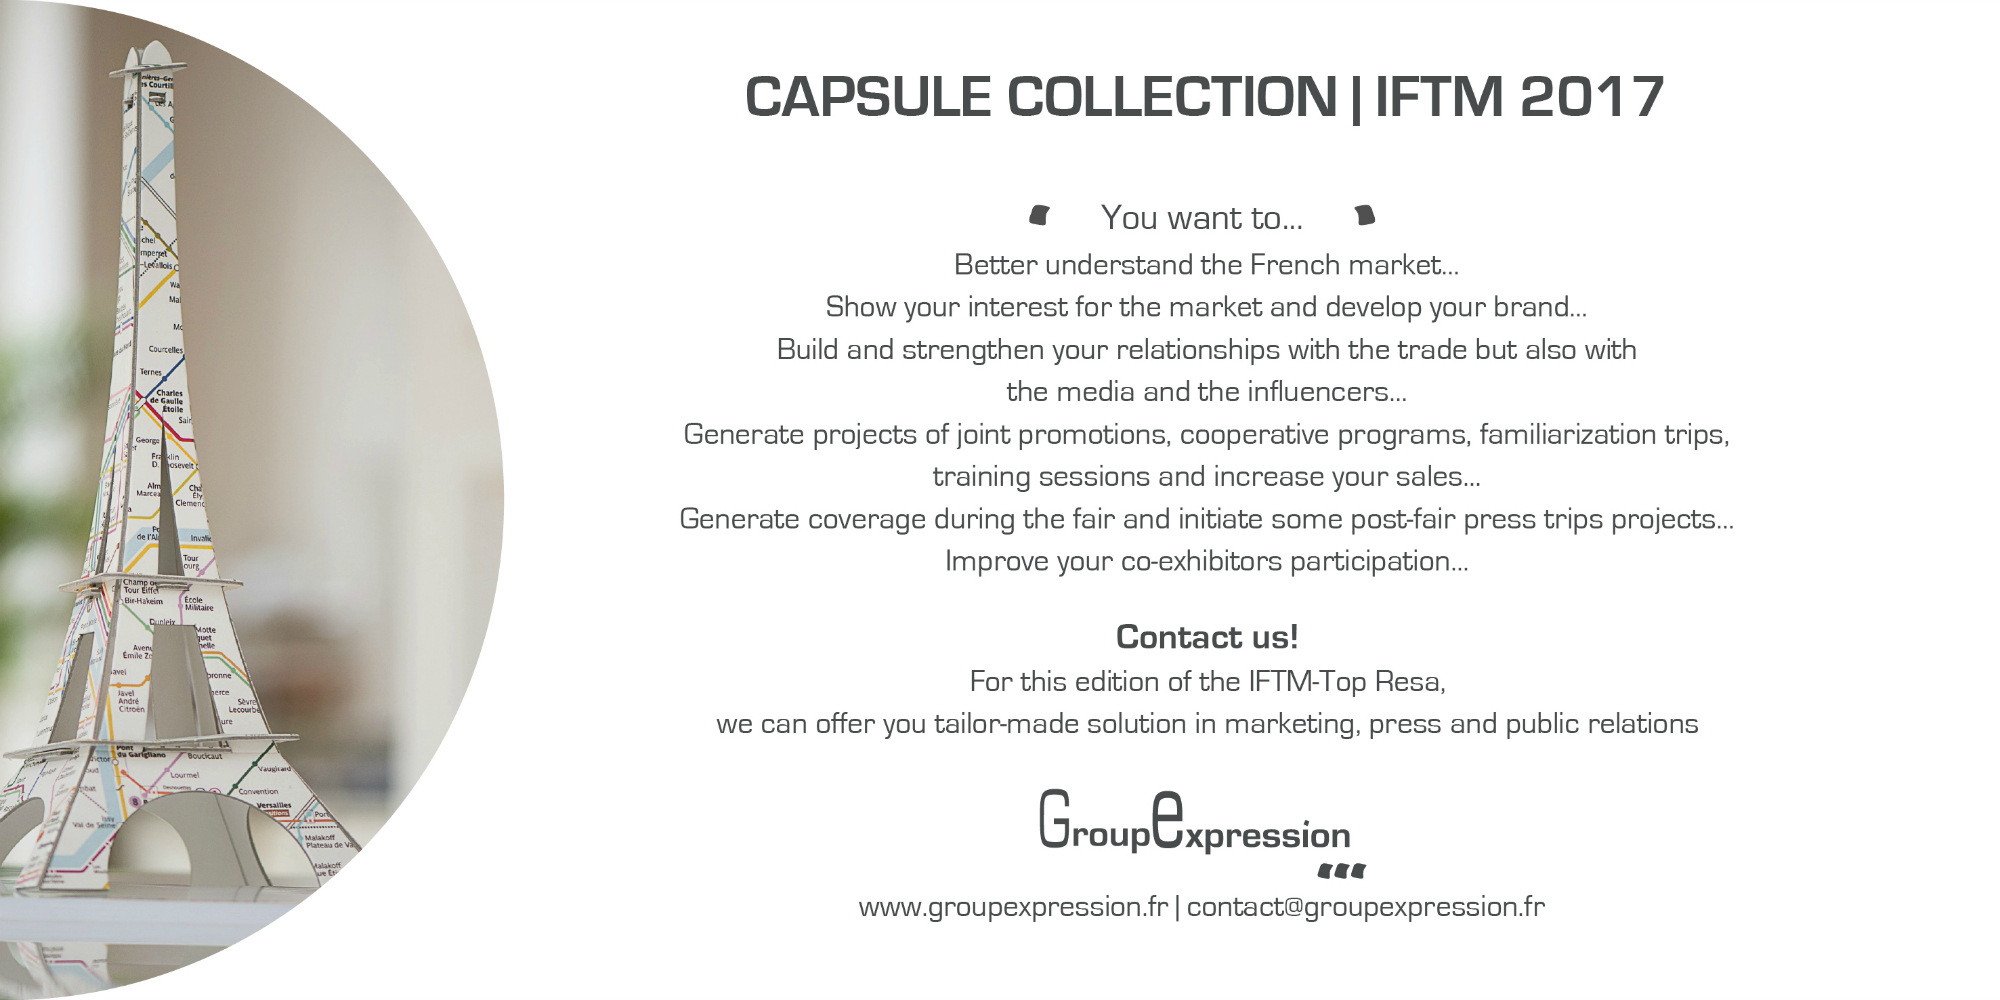 CAPSULE COLLECTION IFTM 2017